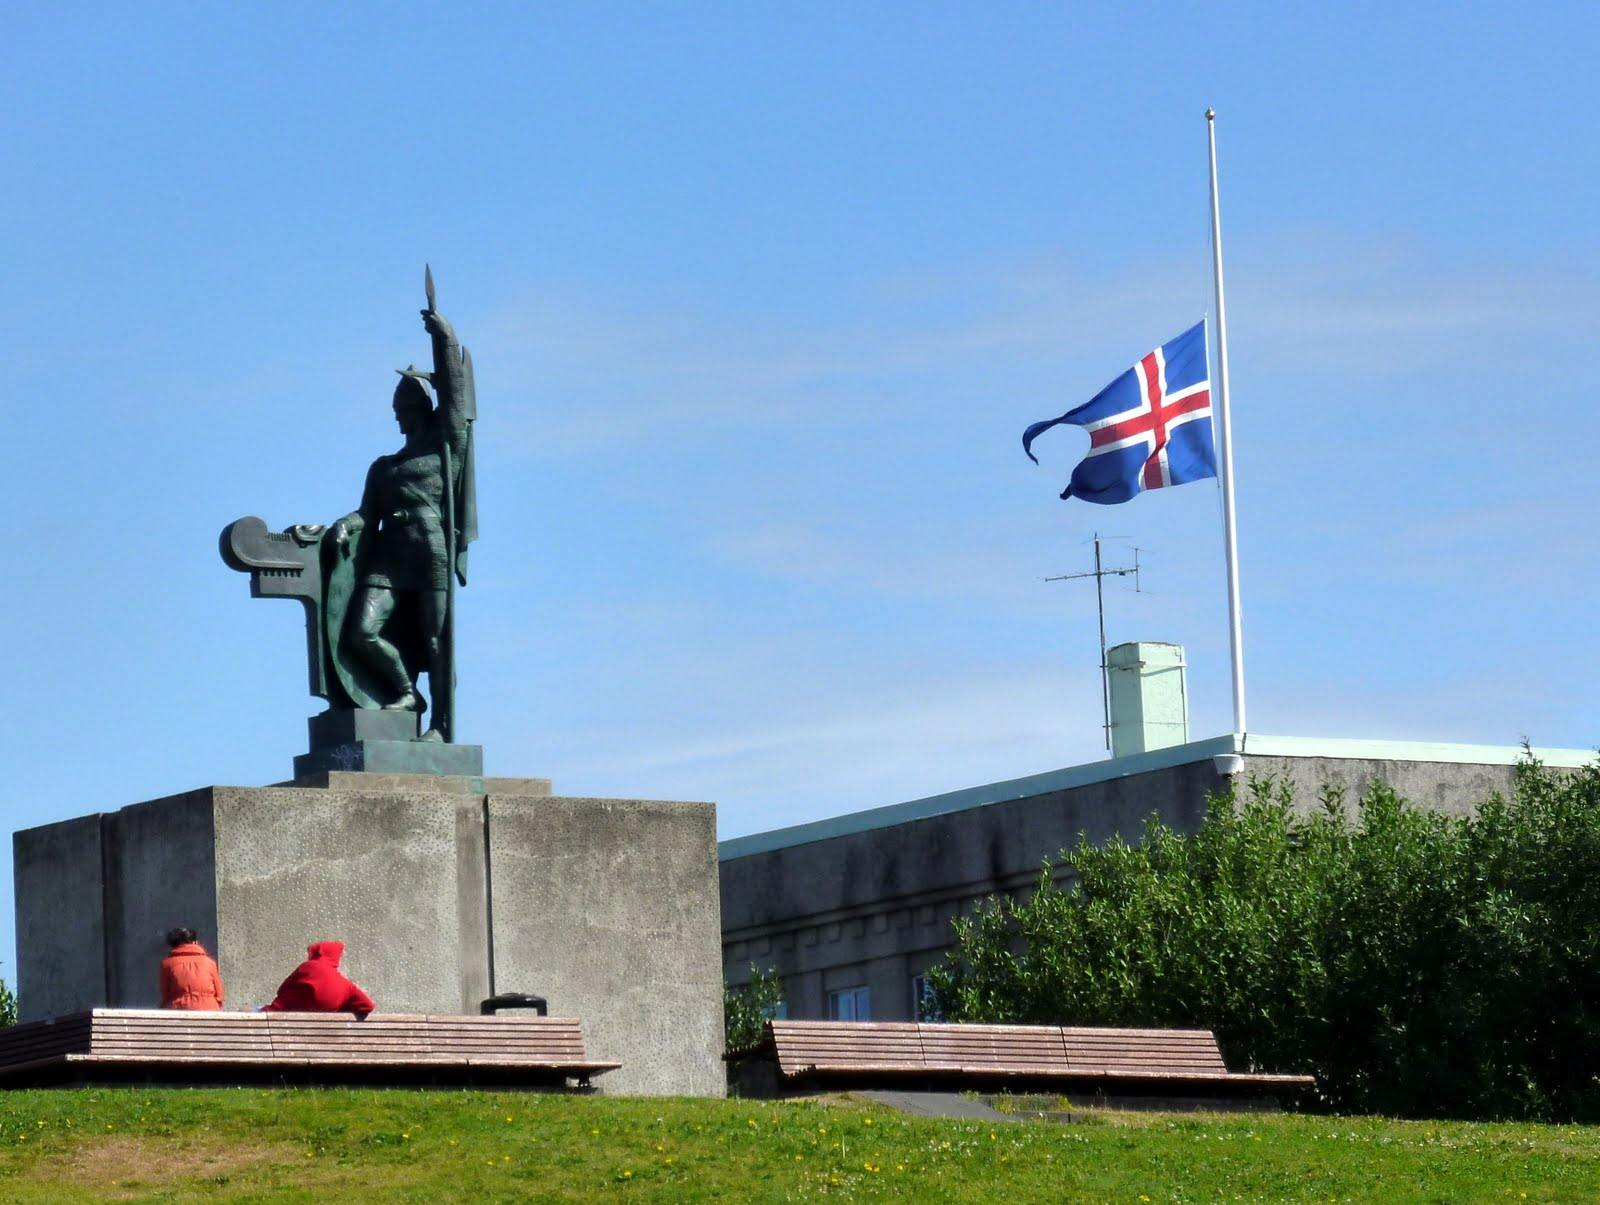 Flags half-mast in IcelandÞ Исландия скорбит по Норвегии. Ингоульвурур Артнасон, первопоселенец, Исландия, Рейкьявик, стасмир, Исландия скорбит по Норвегии. Ингоульвурур Артнасон, первопоселенец, Исландия, Рейкьявик, стасмир